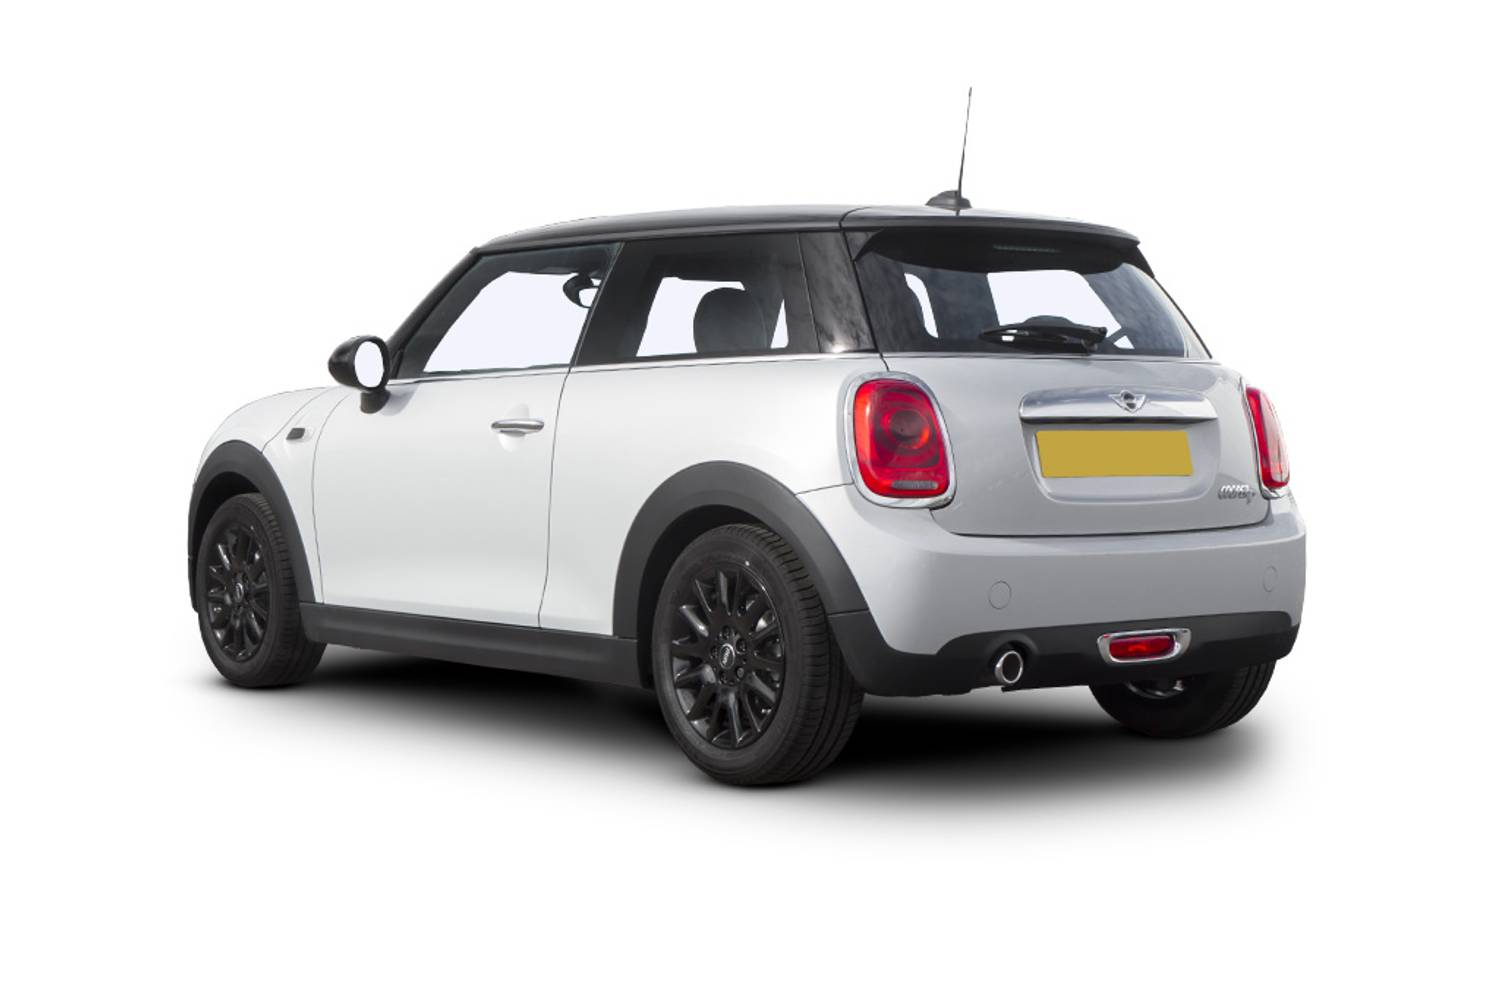 new mini hatchback 1 5 cooper 3 door auto jcw chili media pack xl 2016 for sale. Black Bedroom Furniture Sets. Home Design Ideas